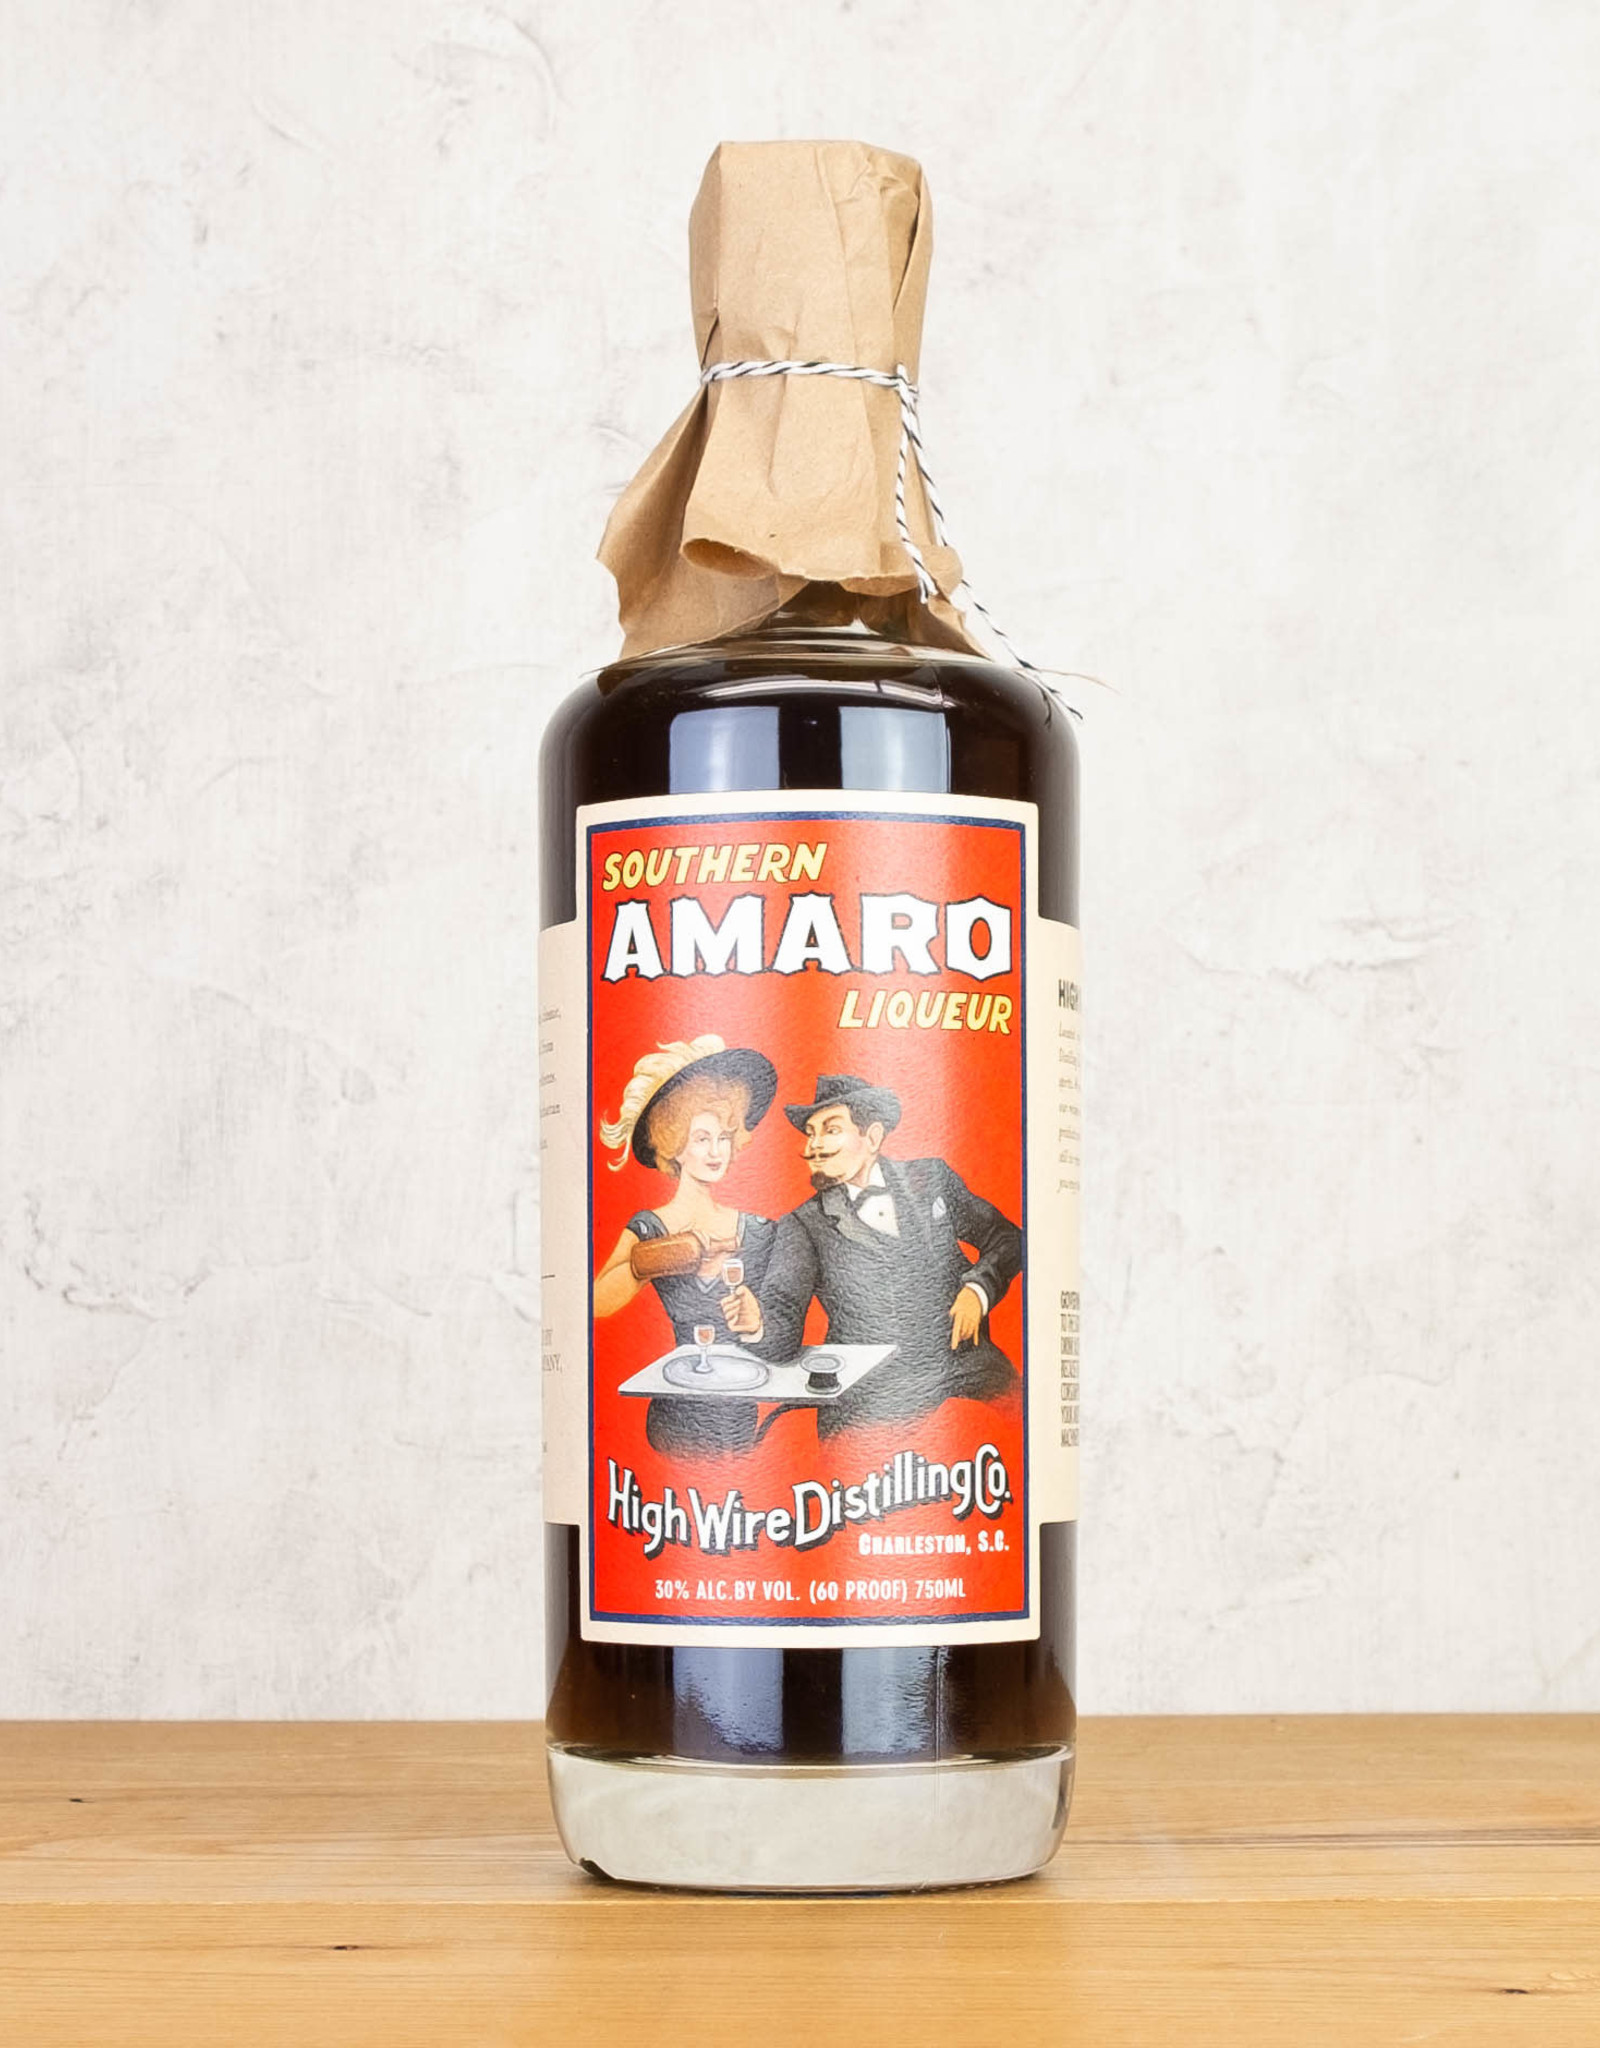 High Wire Distilling Co Southern Amaro